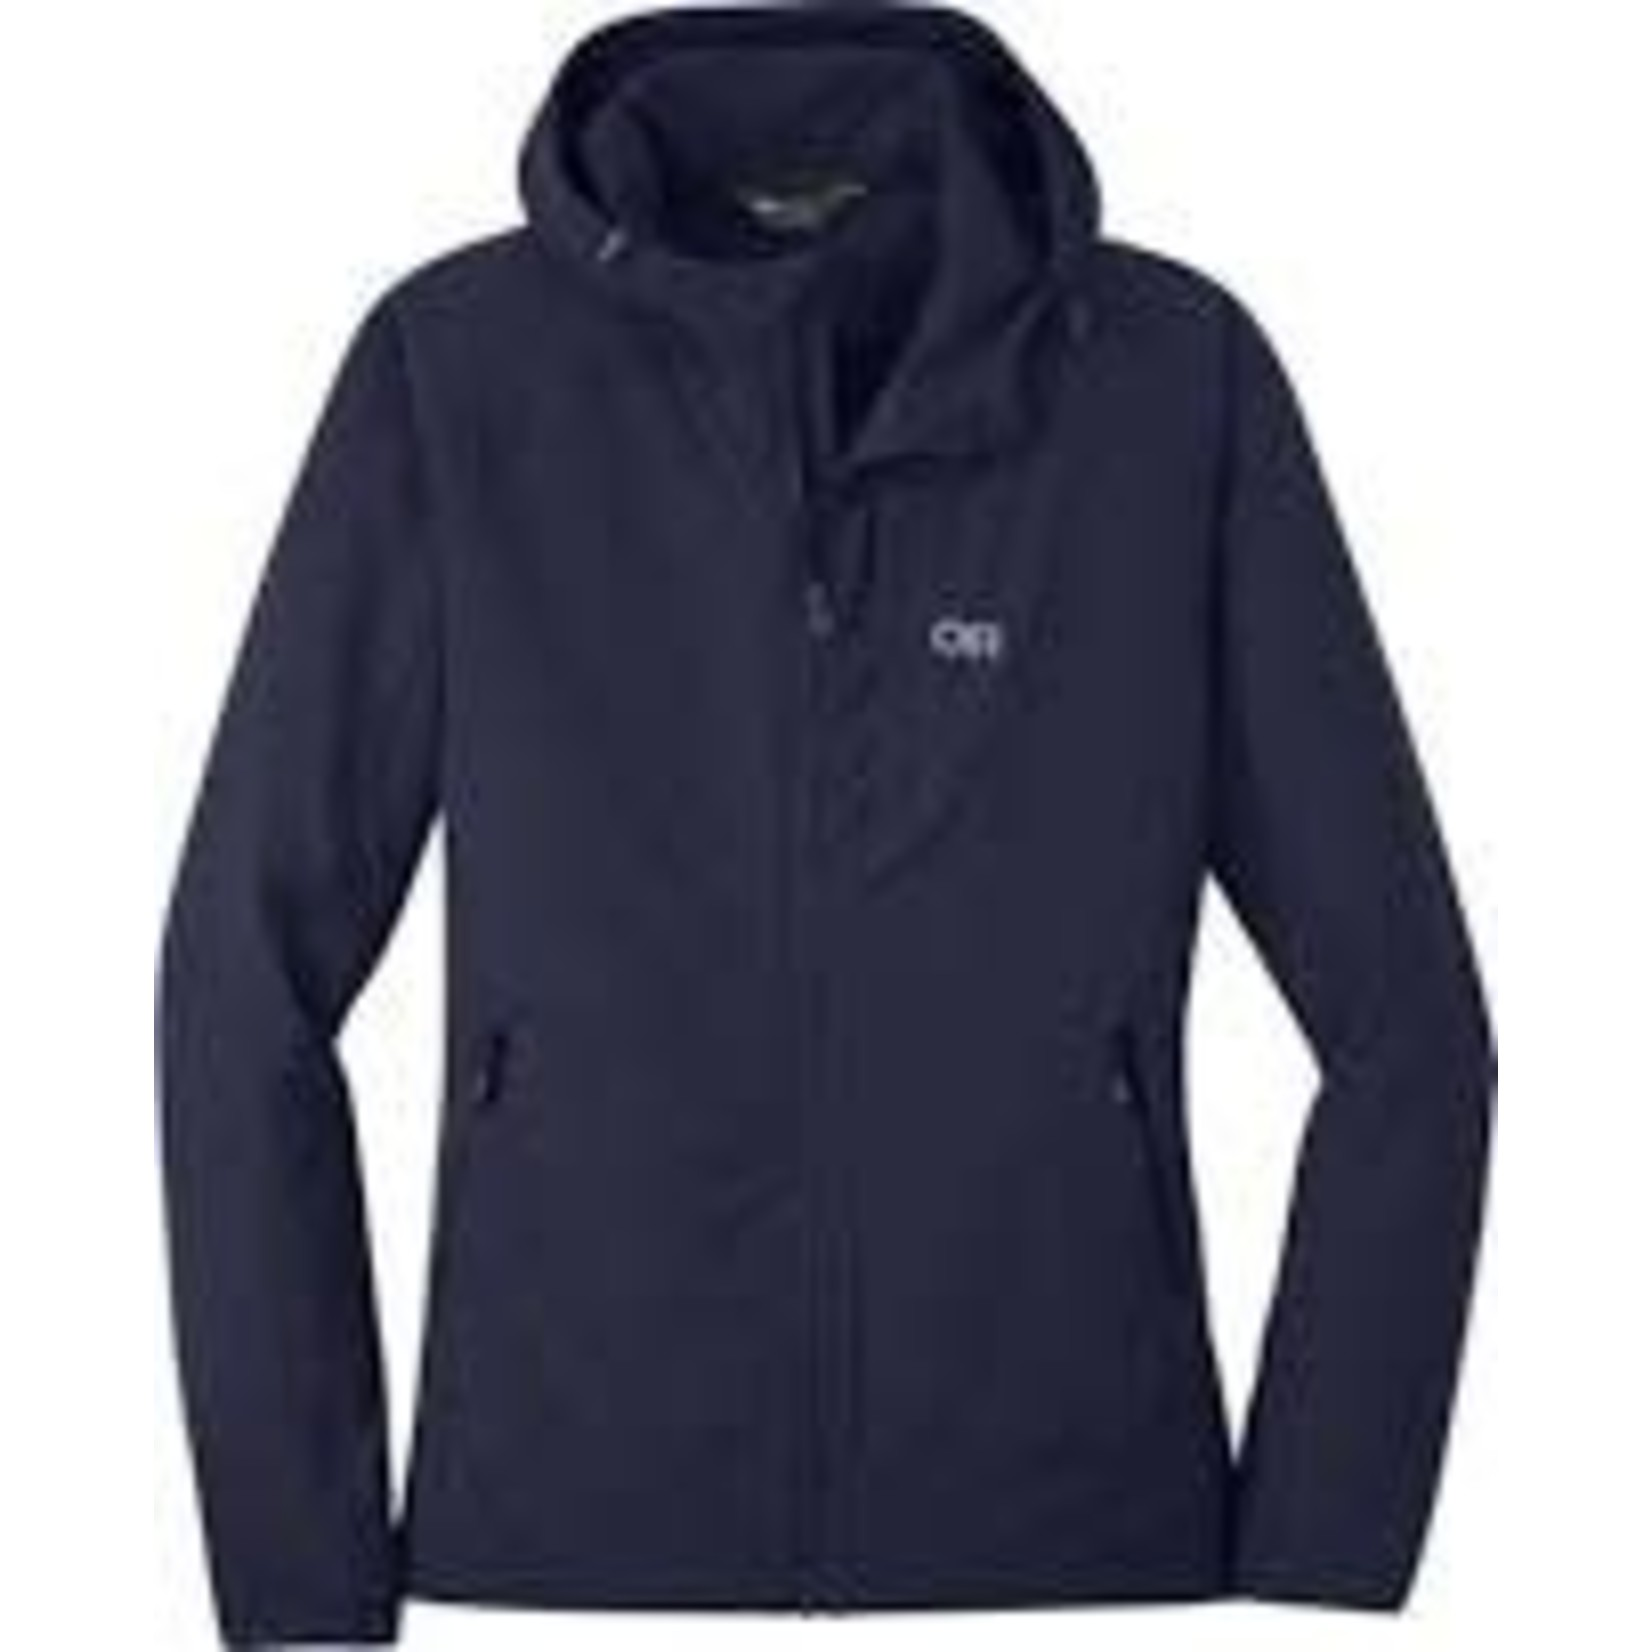 Outdoor Research Outdoor Research Wmn's Ferrosi Hoodie Naval Blue MD